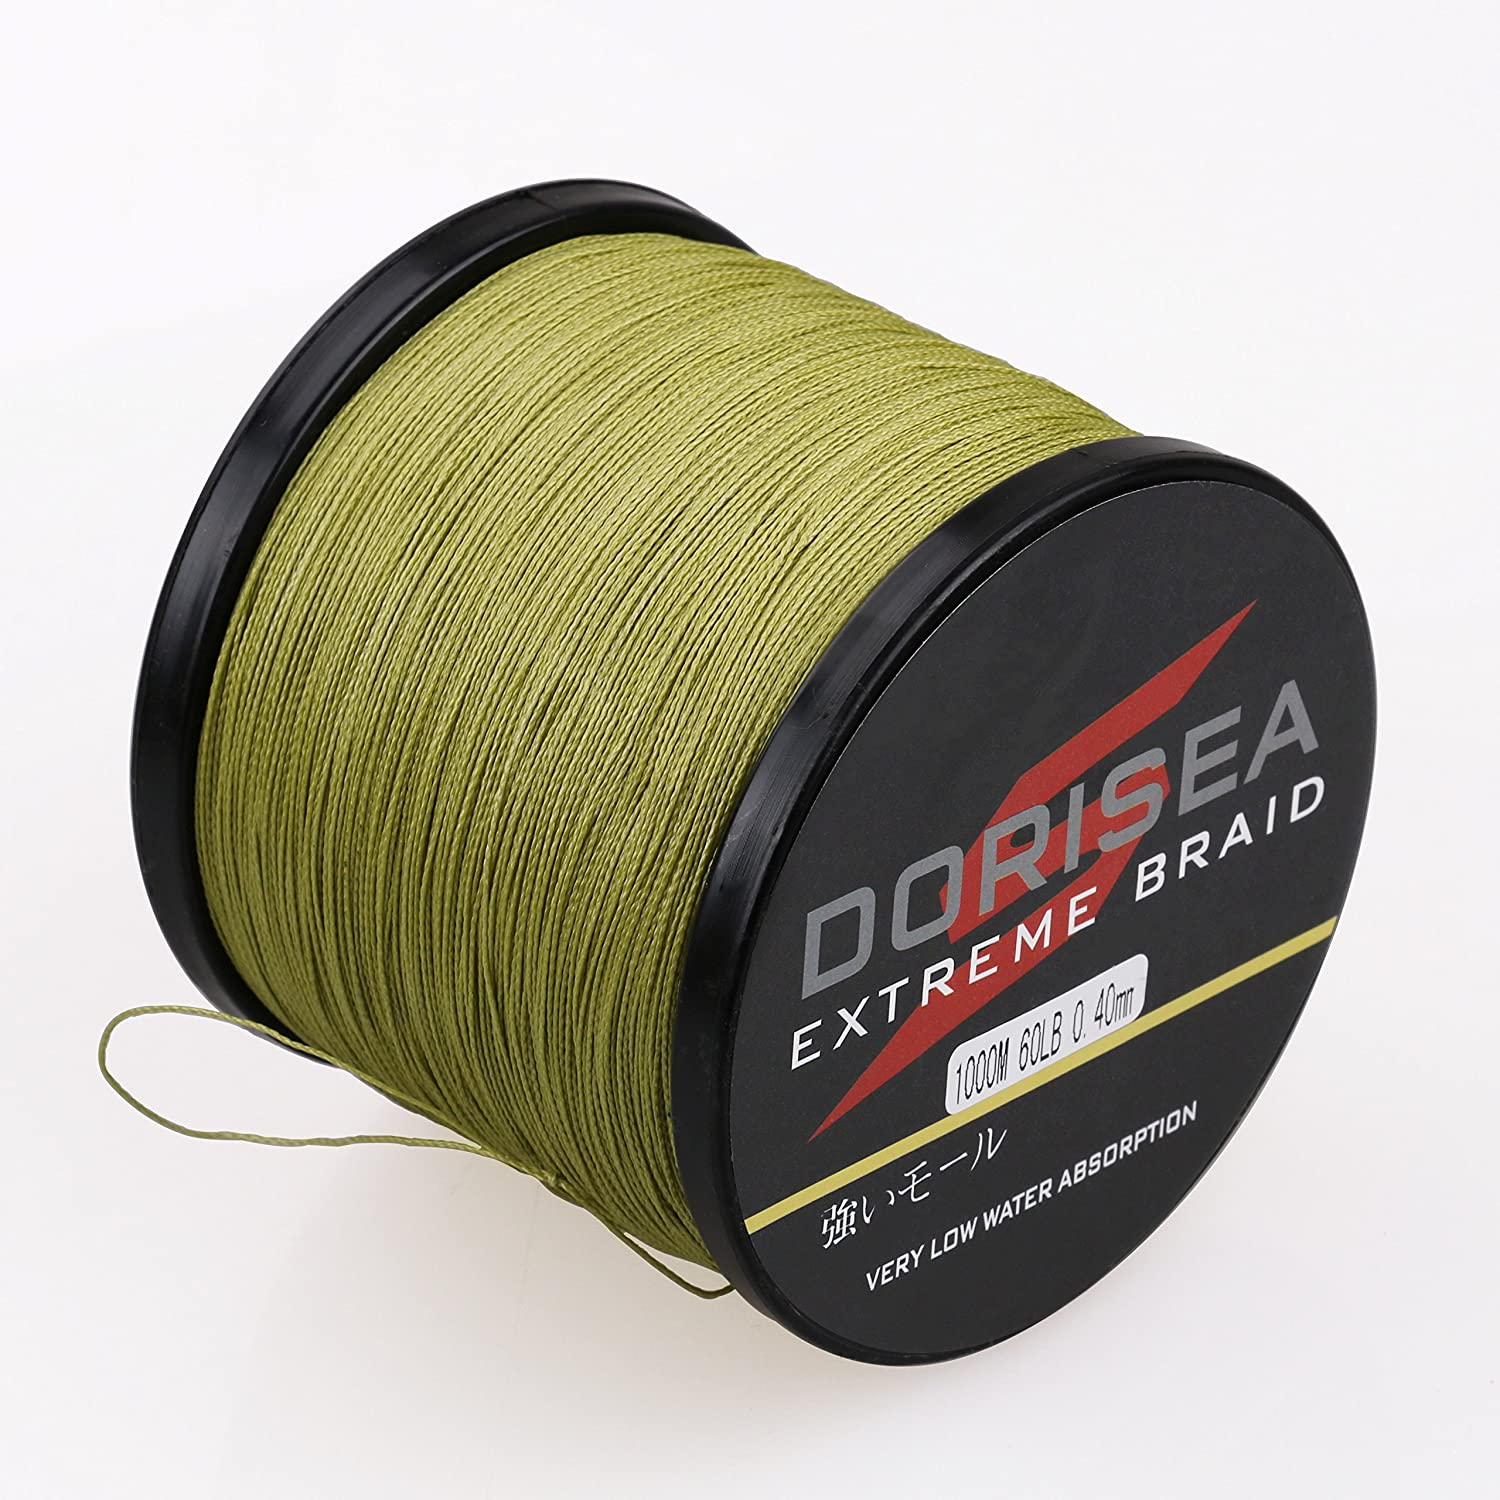 【超特価】 dorisea Extreme Braid Braid 100 – % PE編組釣りライン109yards-2187yards 6 B0789YZWVY – 300lbテストArmy Green 1000m/1093Yards 400lb/1.4mm(16Strands) B0789YZWVY, フクシマシ:bcde7fff --- a0267596.xsph.ru